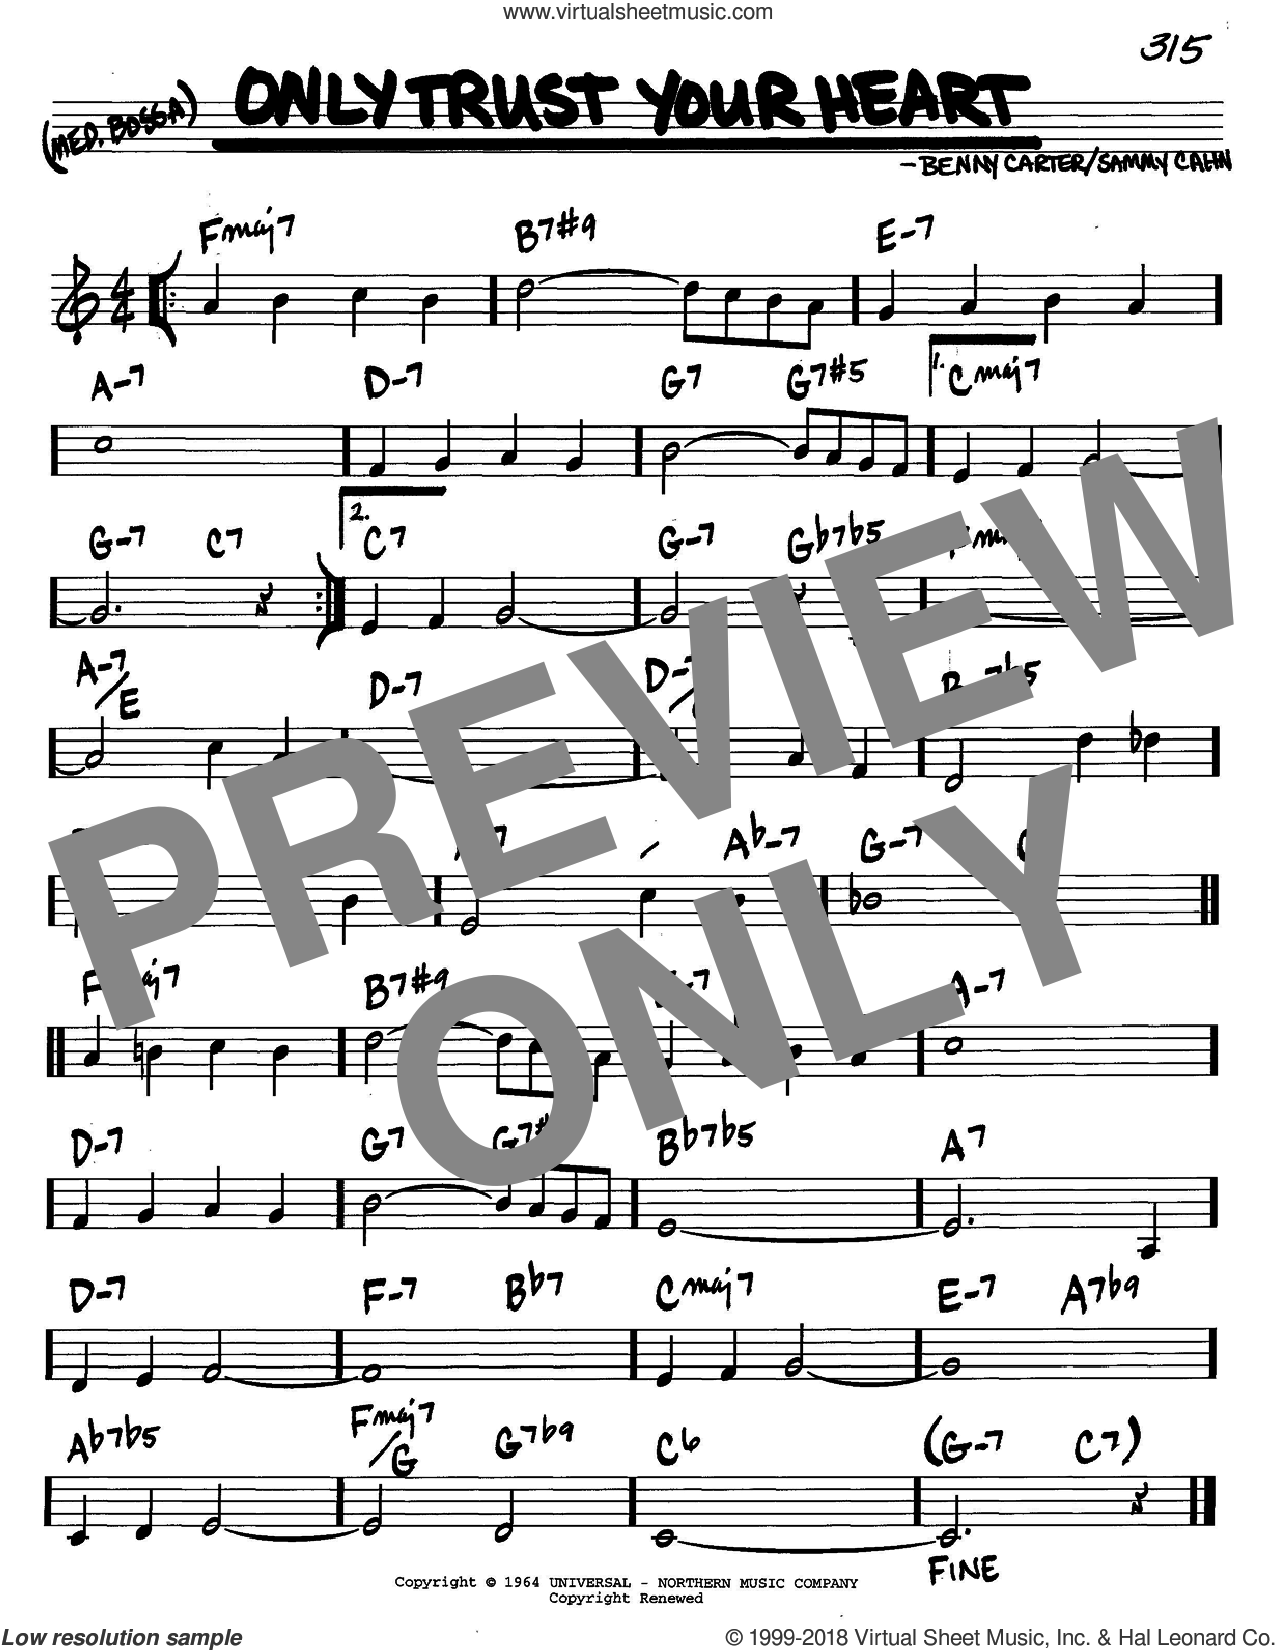 Only Trust Your Heart sheet music for voice and other instruments (C) by Benny Carter